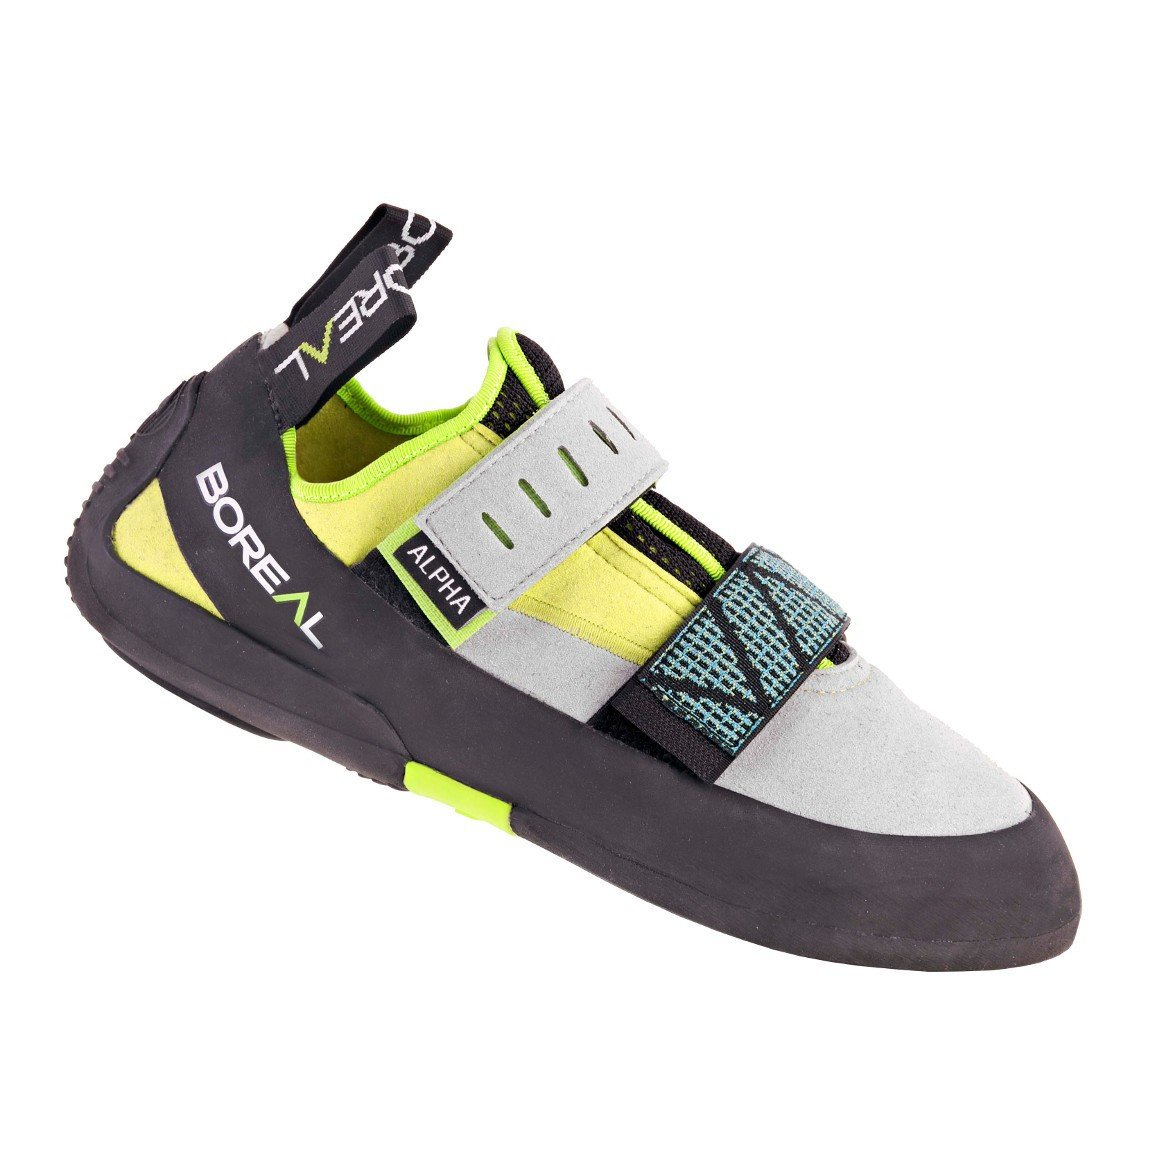 Boreal Alpha VC climbing shoe black, grey and yellow